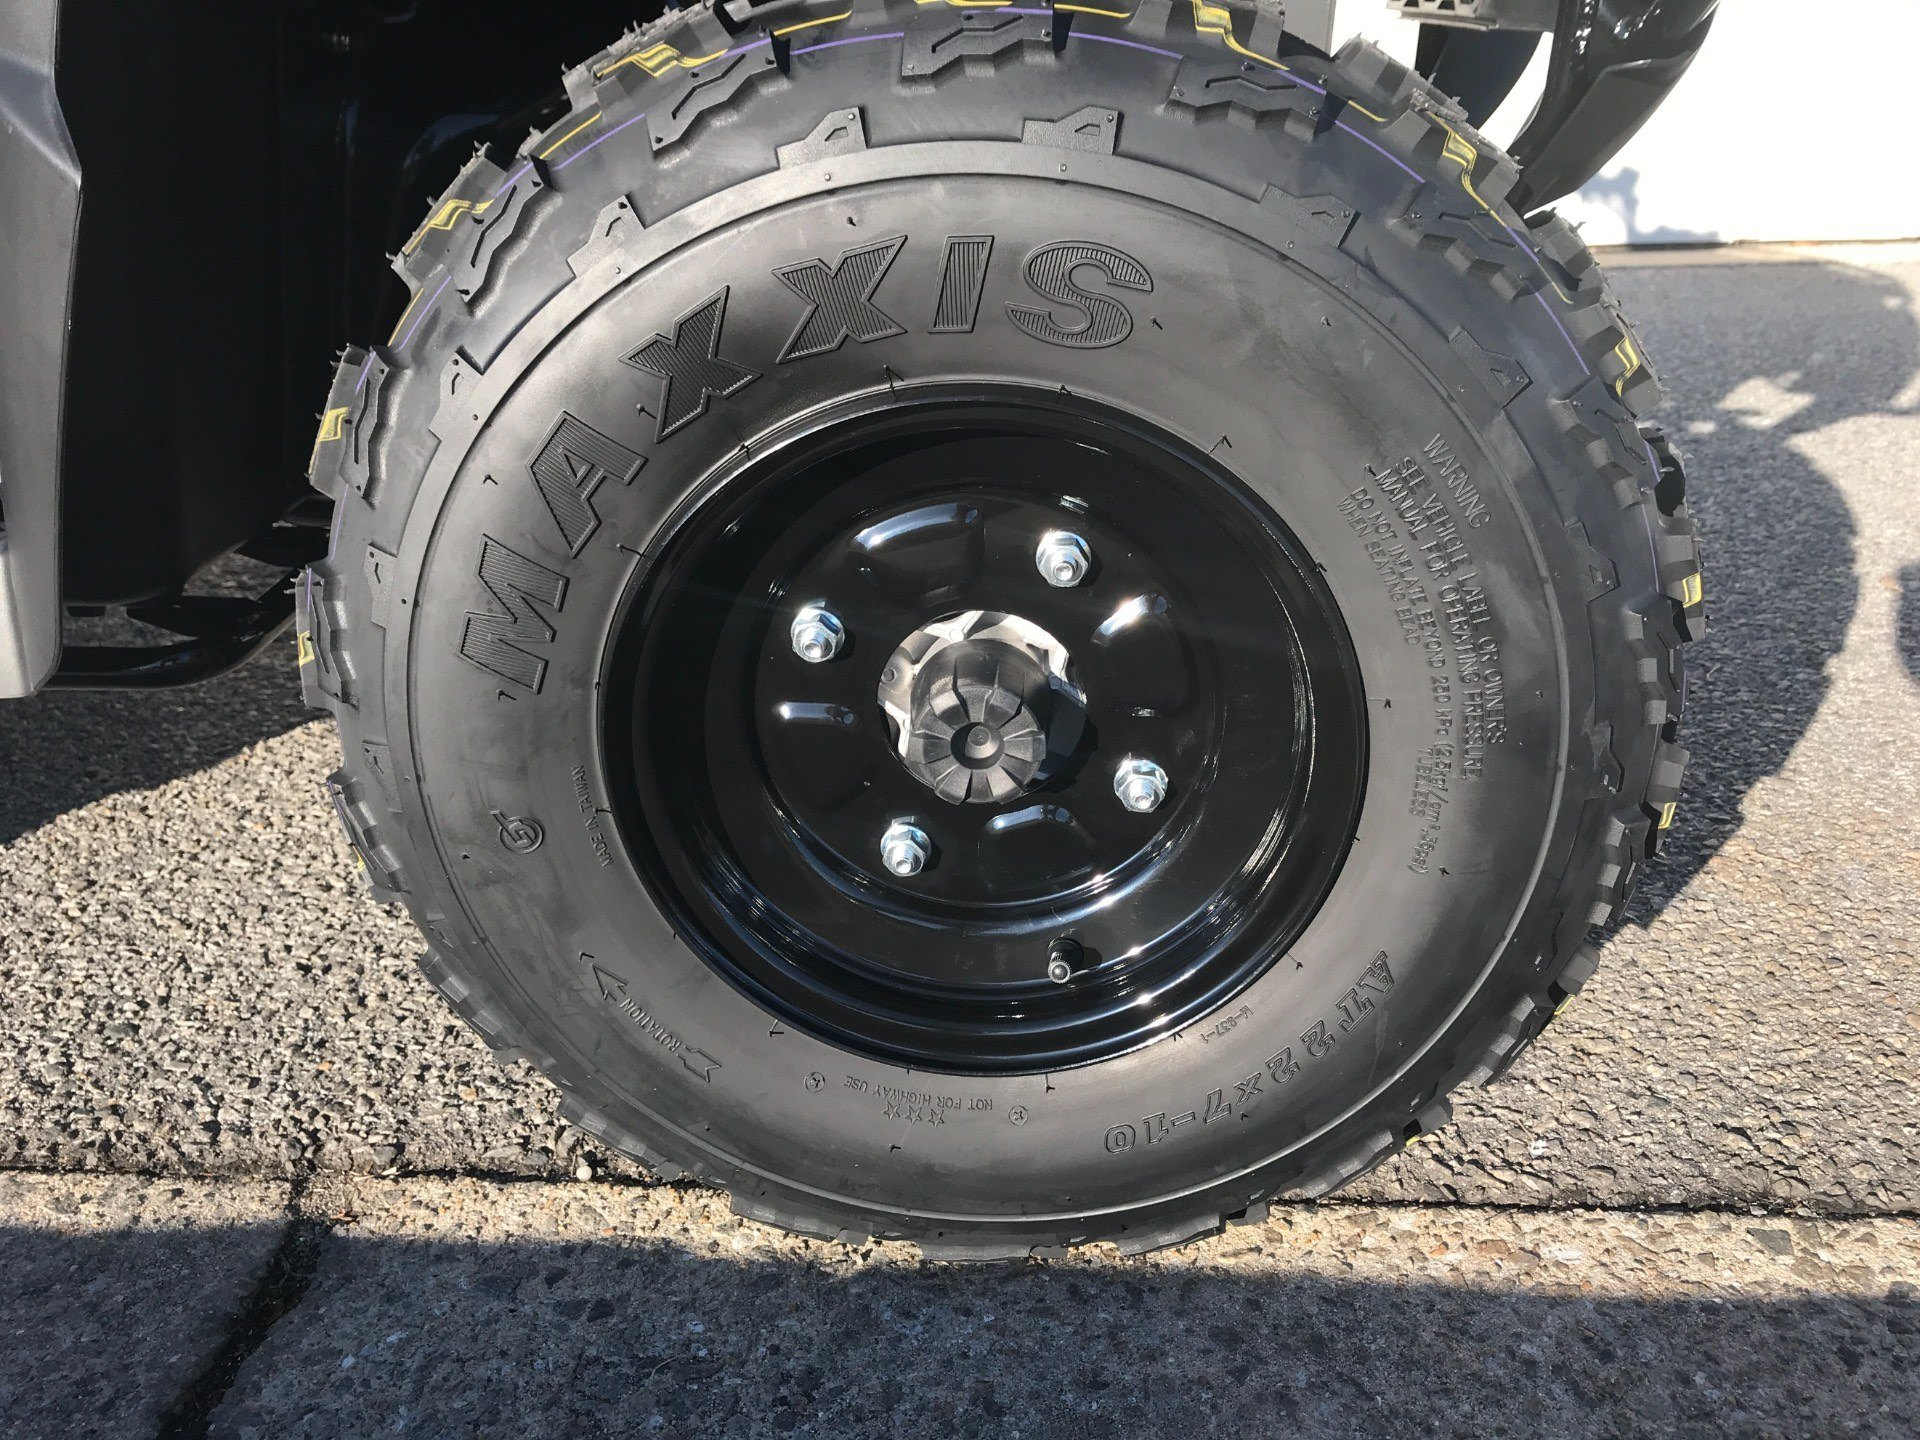 2018 Kawasaki Brute Force 300 in Greenville, North Carolina - Photo 15